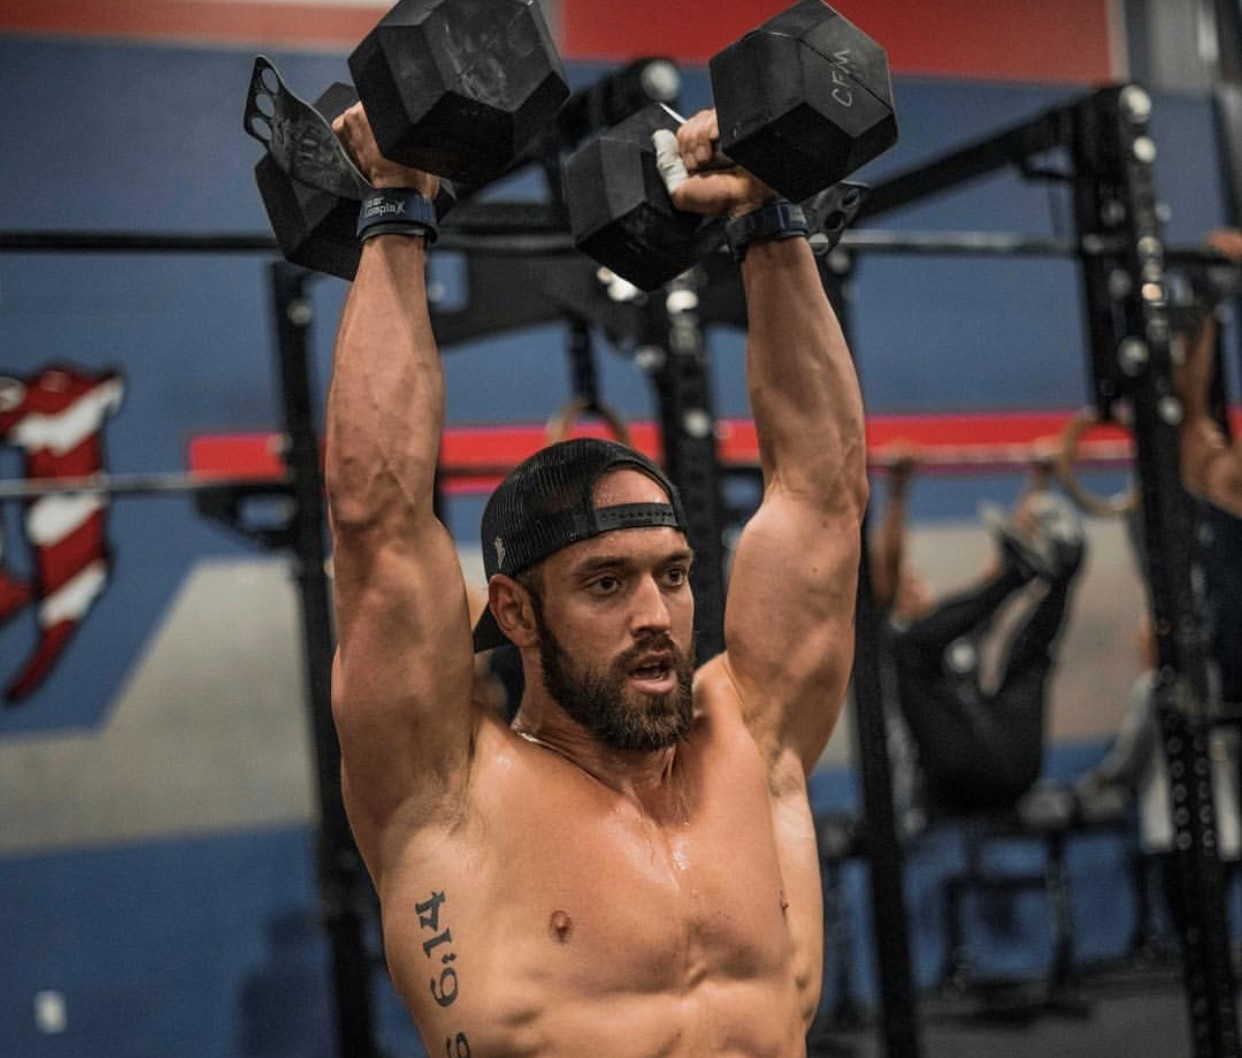 Rich-Froning-CrossFit-Open-2019